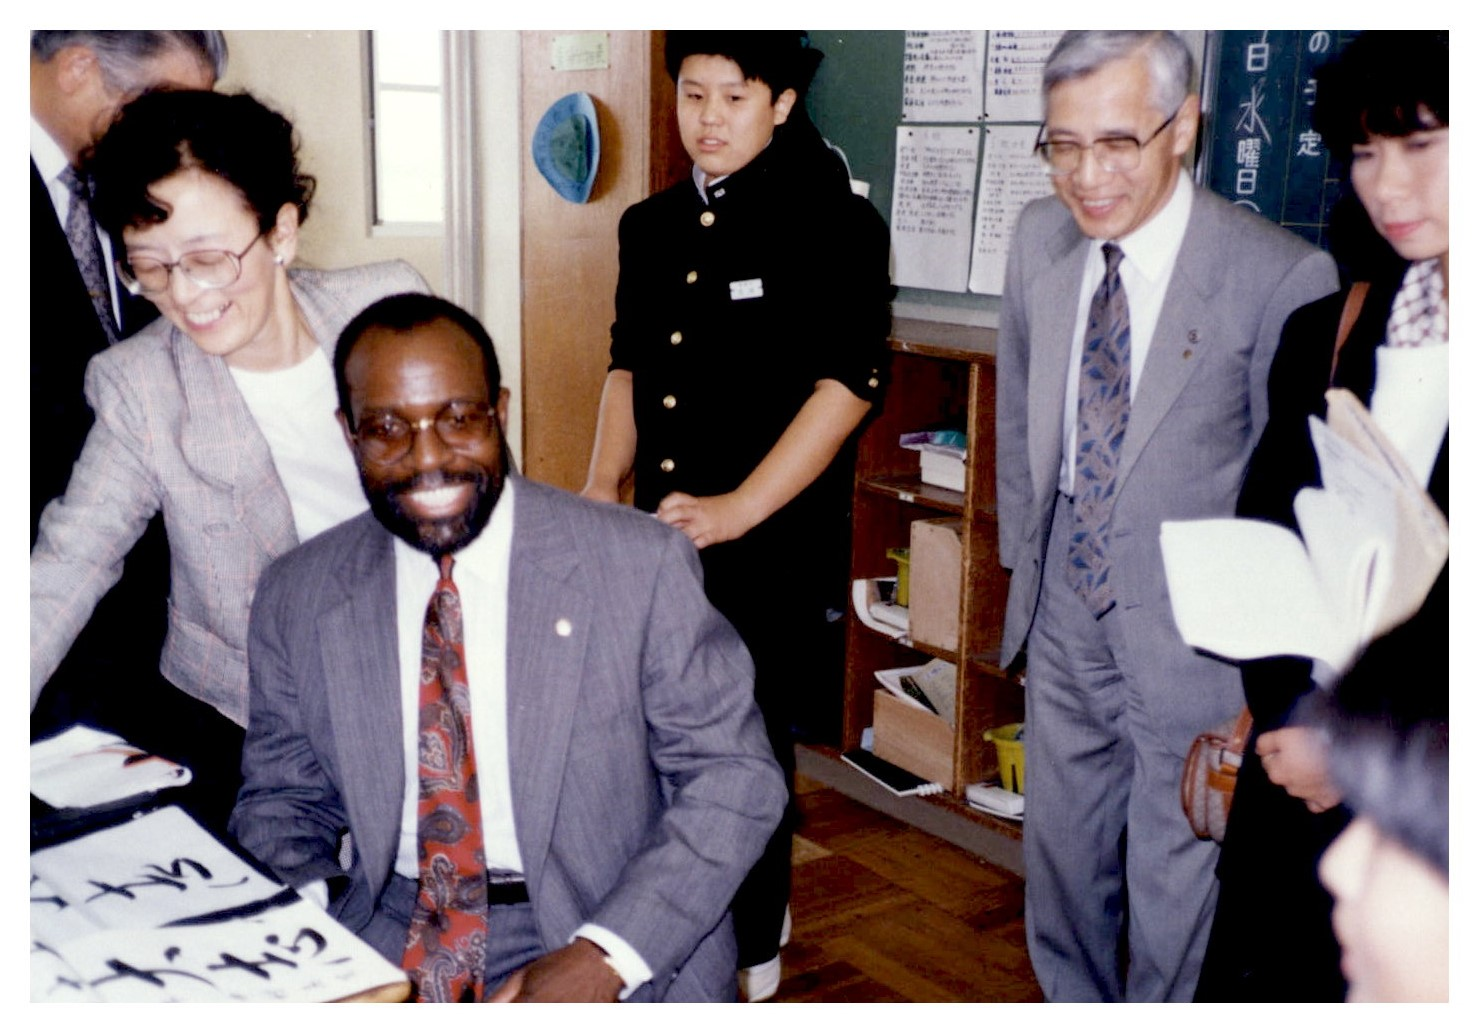 Charlie Nelms sits at a desk. Two women and two men stand nearby. On the desk are pieces of paper with Japanese character calligraphy.